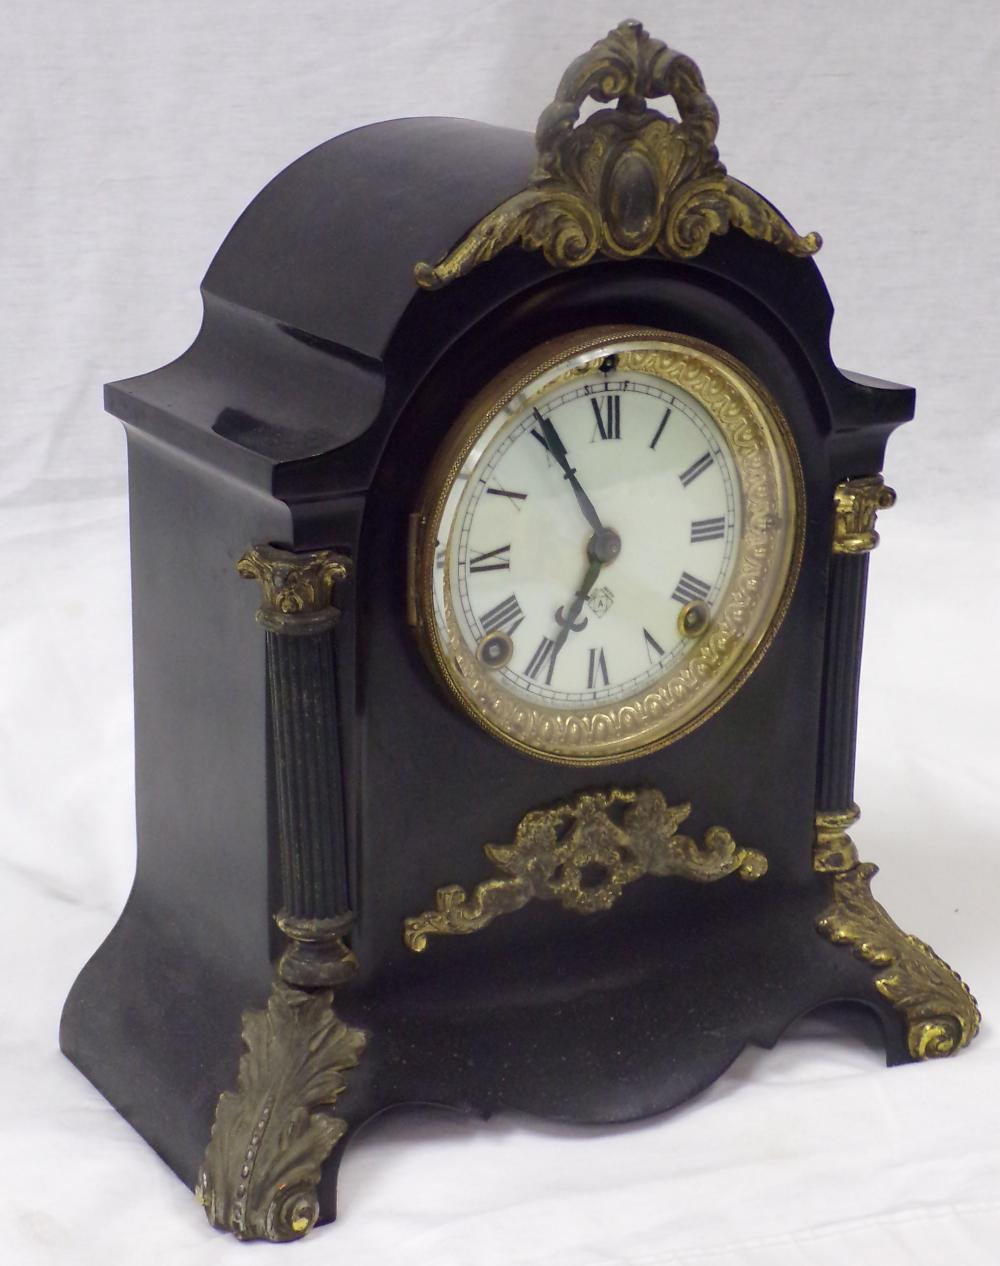 Ansonia shelf clock in black metal case having brass plated ornamental decoration